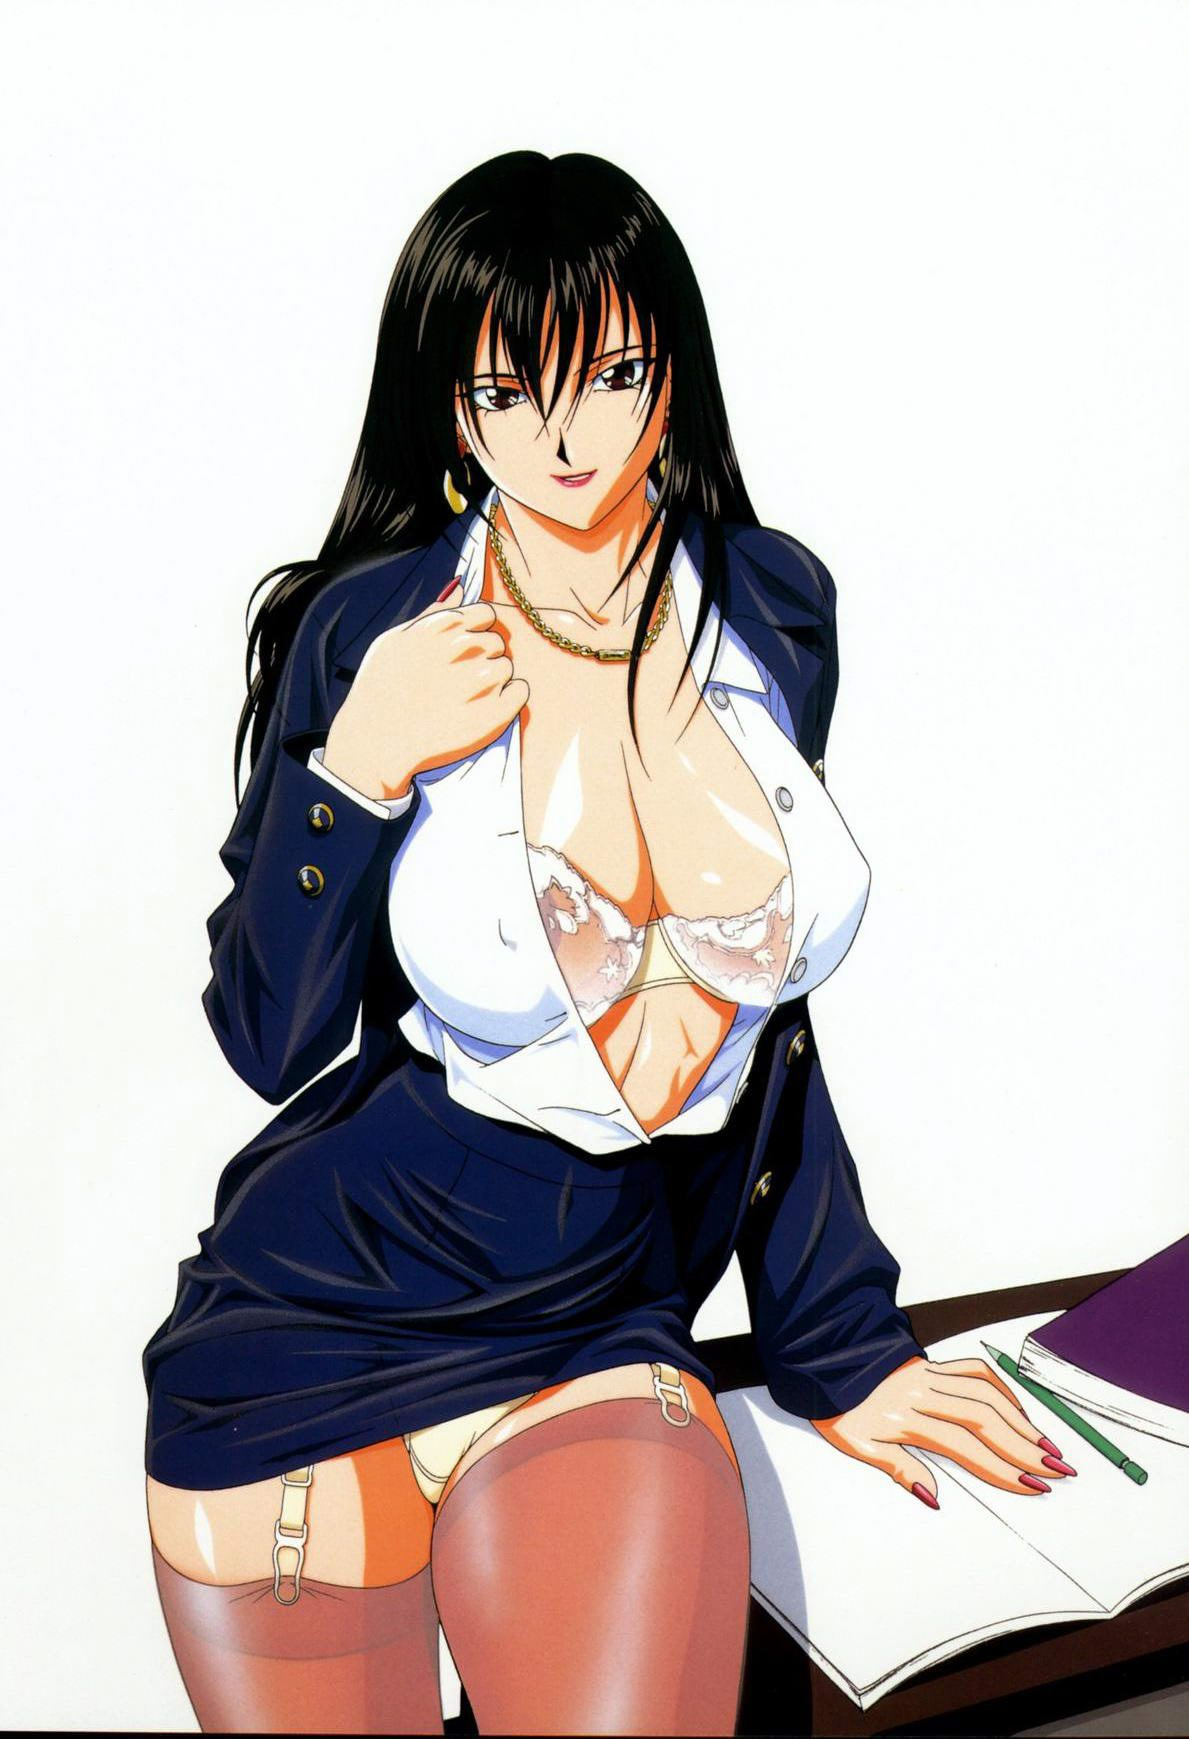 Anime Hentai Most Famous And Sexiest Of Anime And Hentai Babes